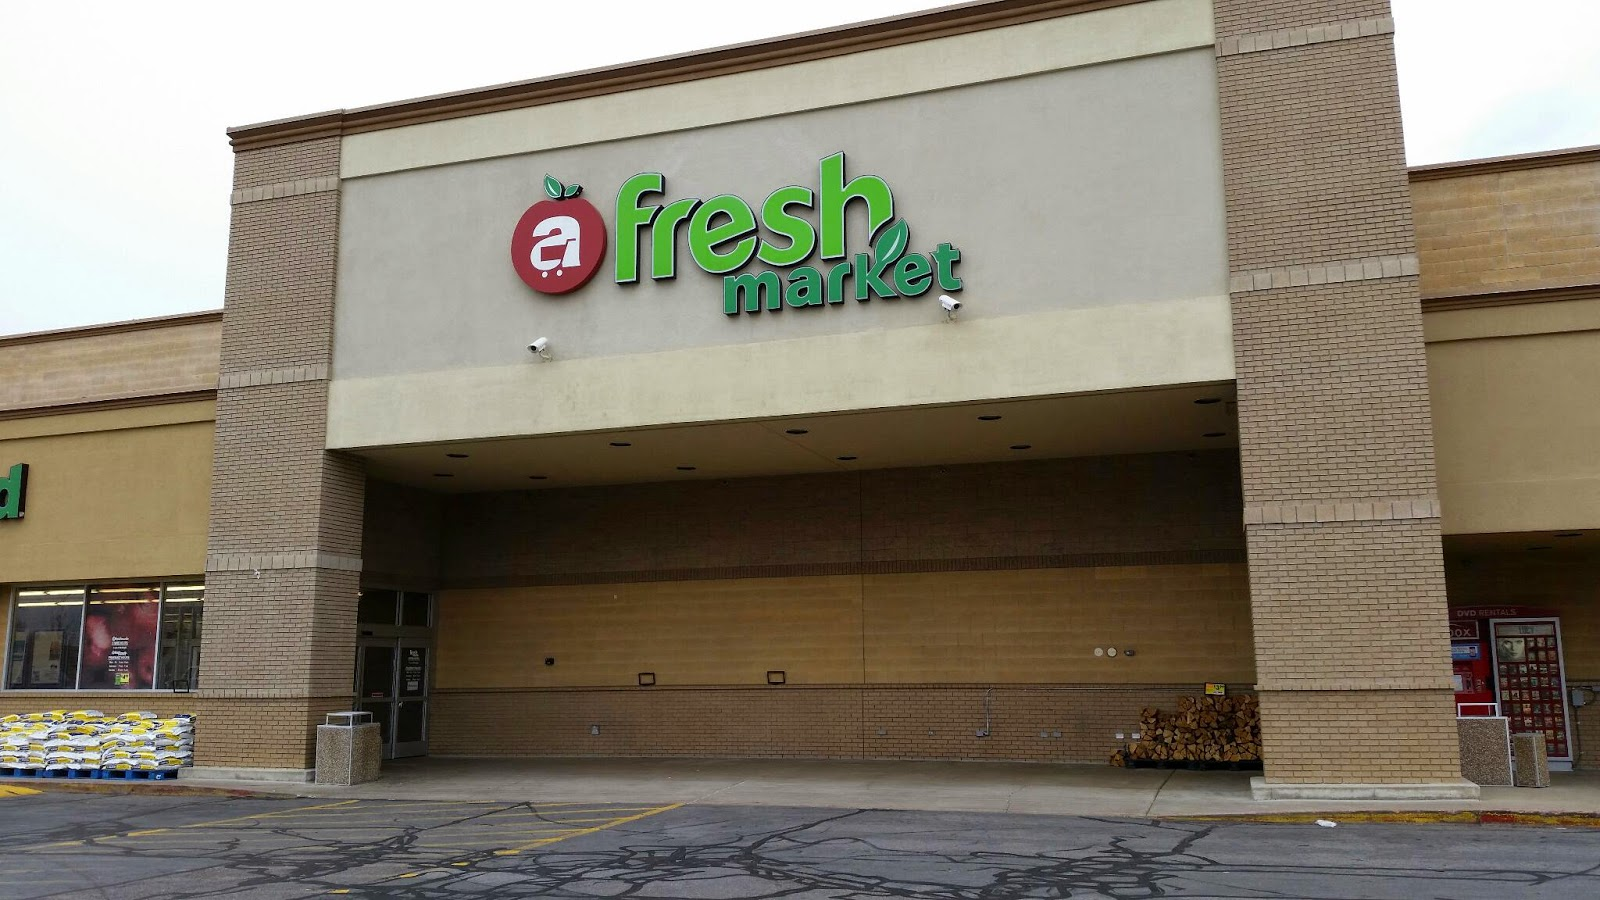 I Highlighted The Best Bargains In Green For Fresh Market S And Bowman These Items Can Be Used Your 3 Month Food Storage Supply